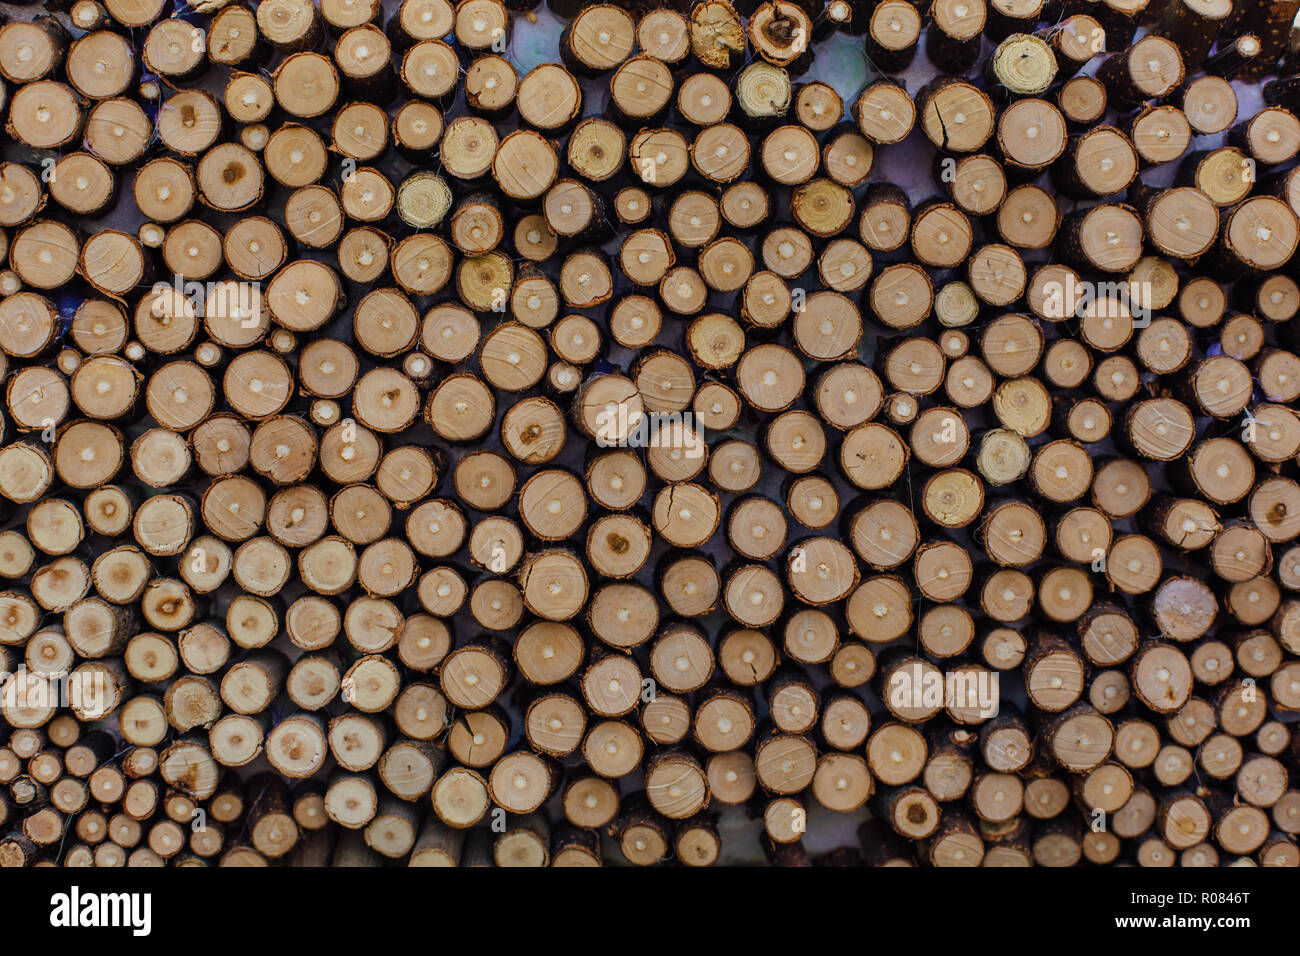 Wooden Stumps Close Up Small Pine Wooden Circles Pattern Wooden